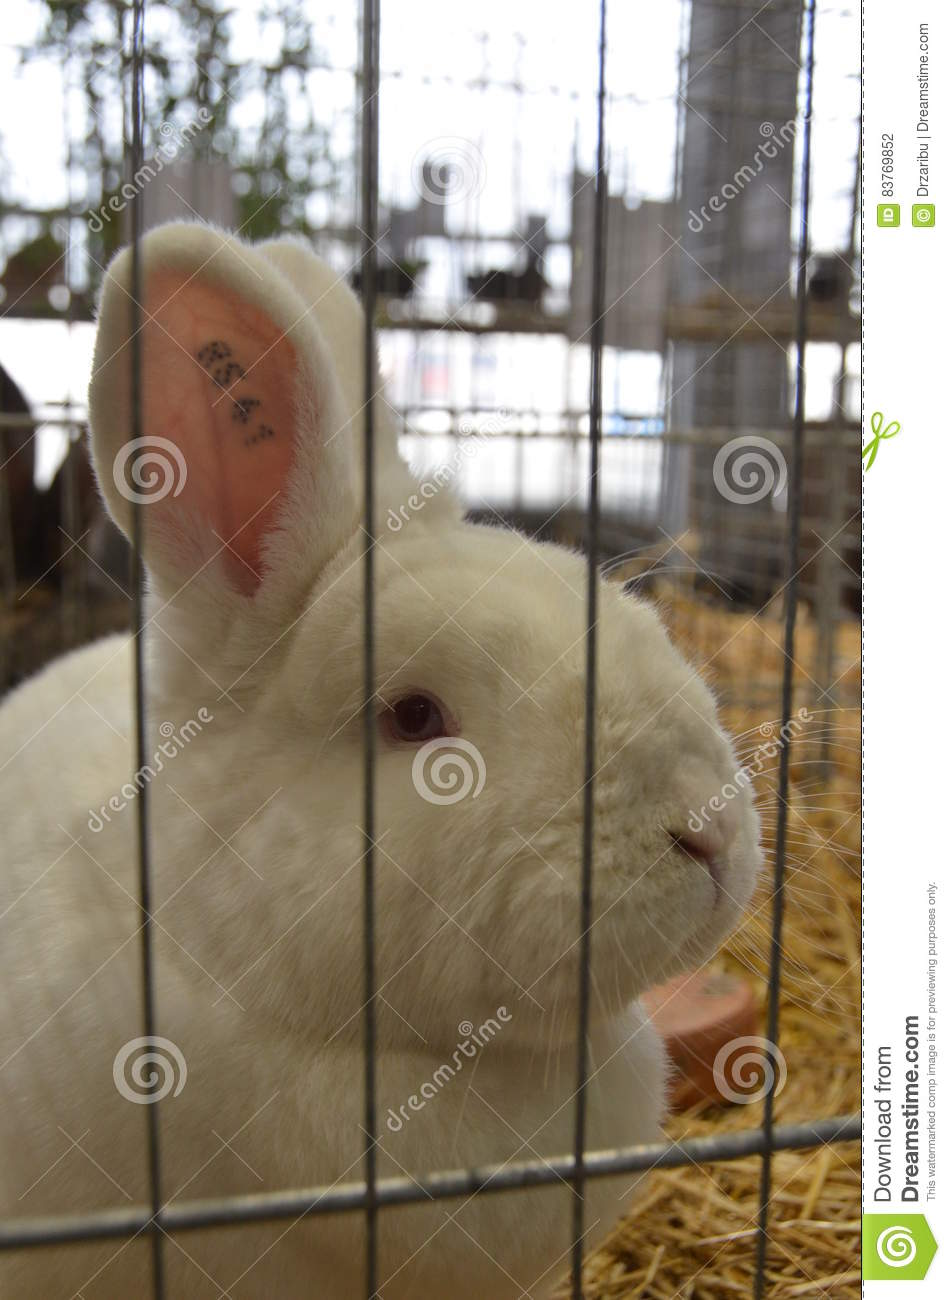 New Zealand White Rabbit Stock Photo Image Of Rabbit 83769852